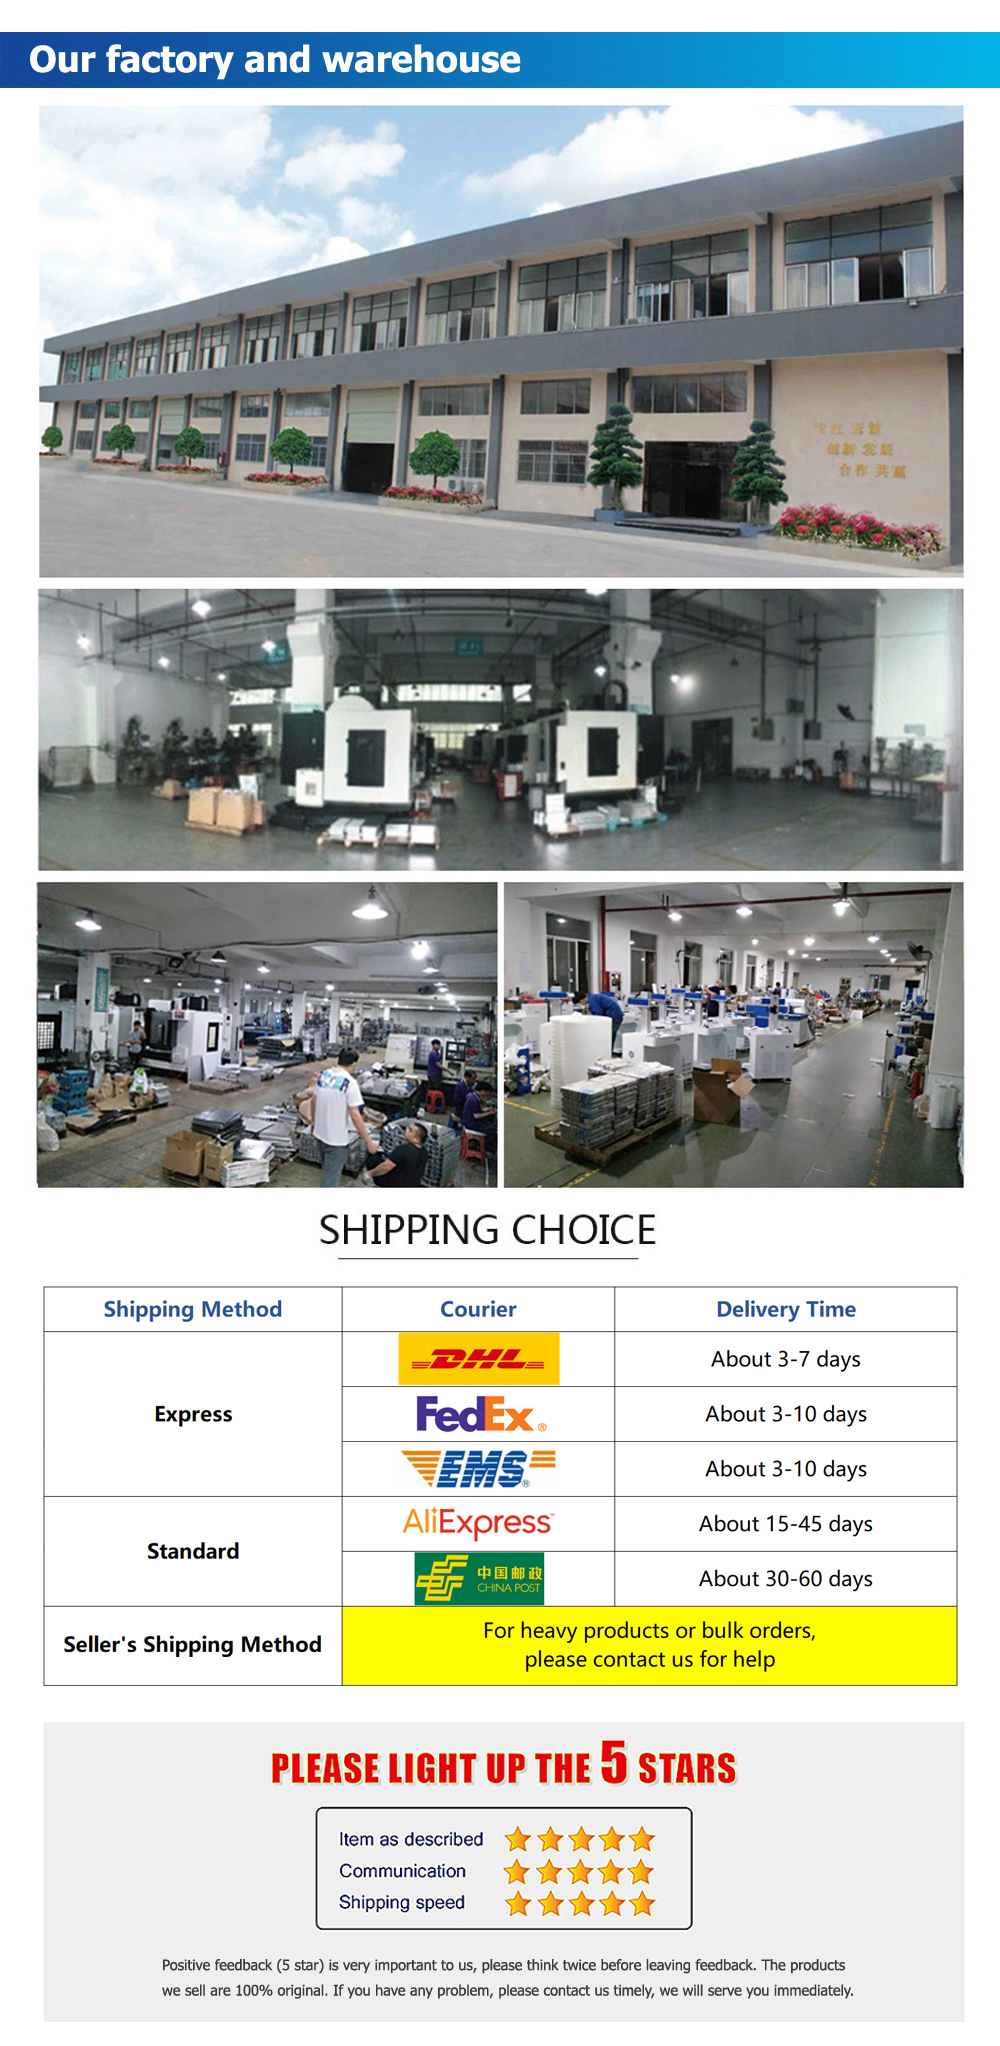 00 factory & shipping choice